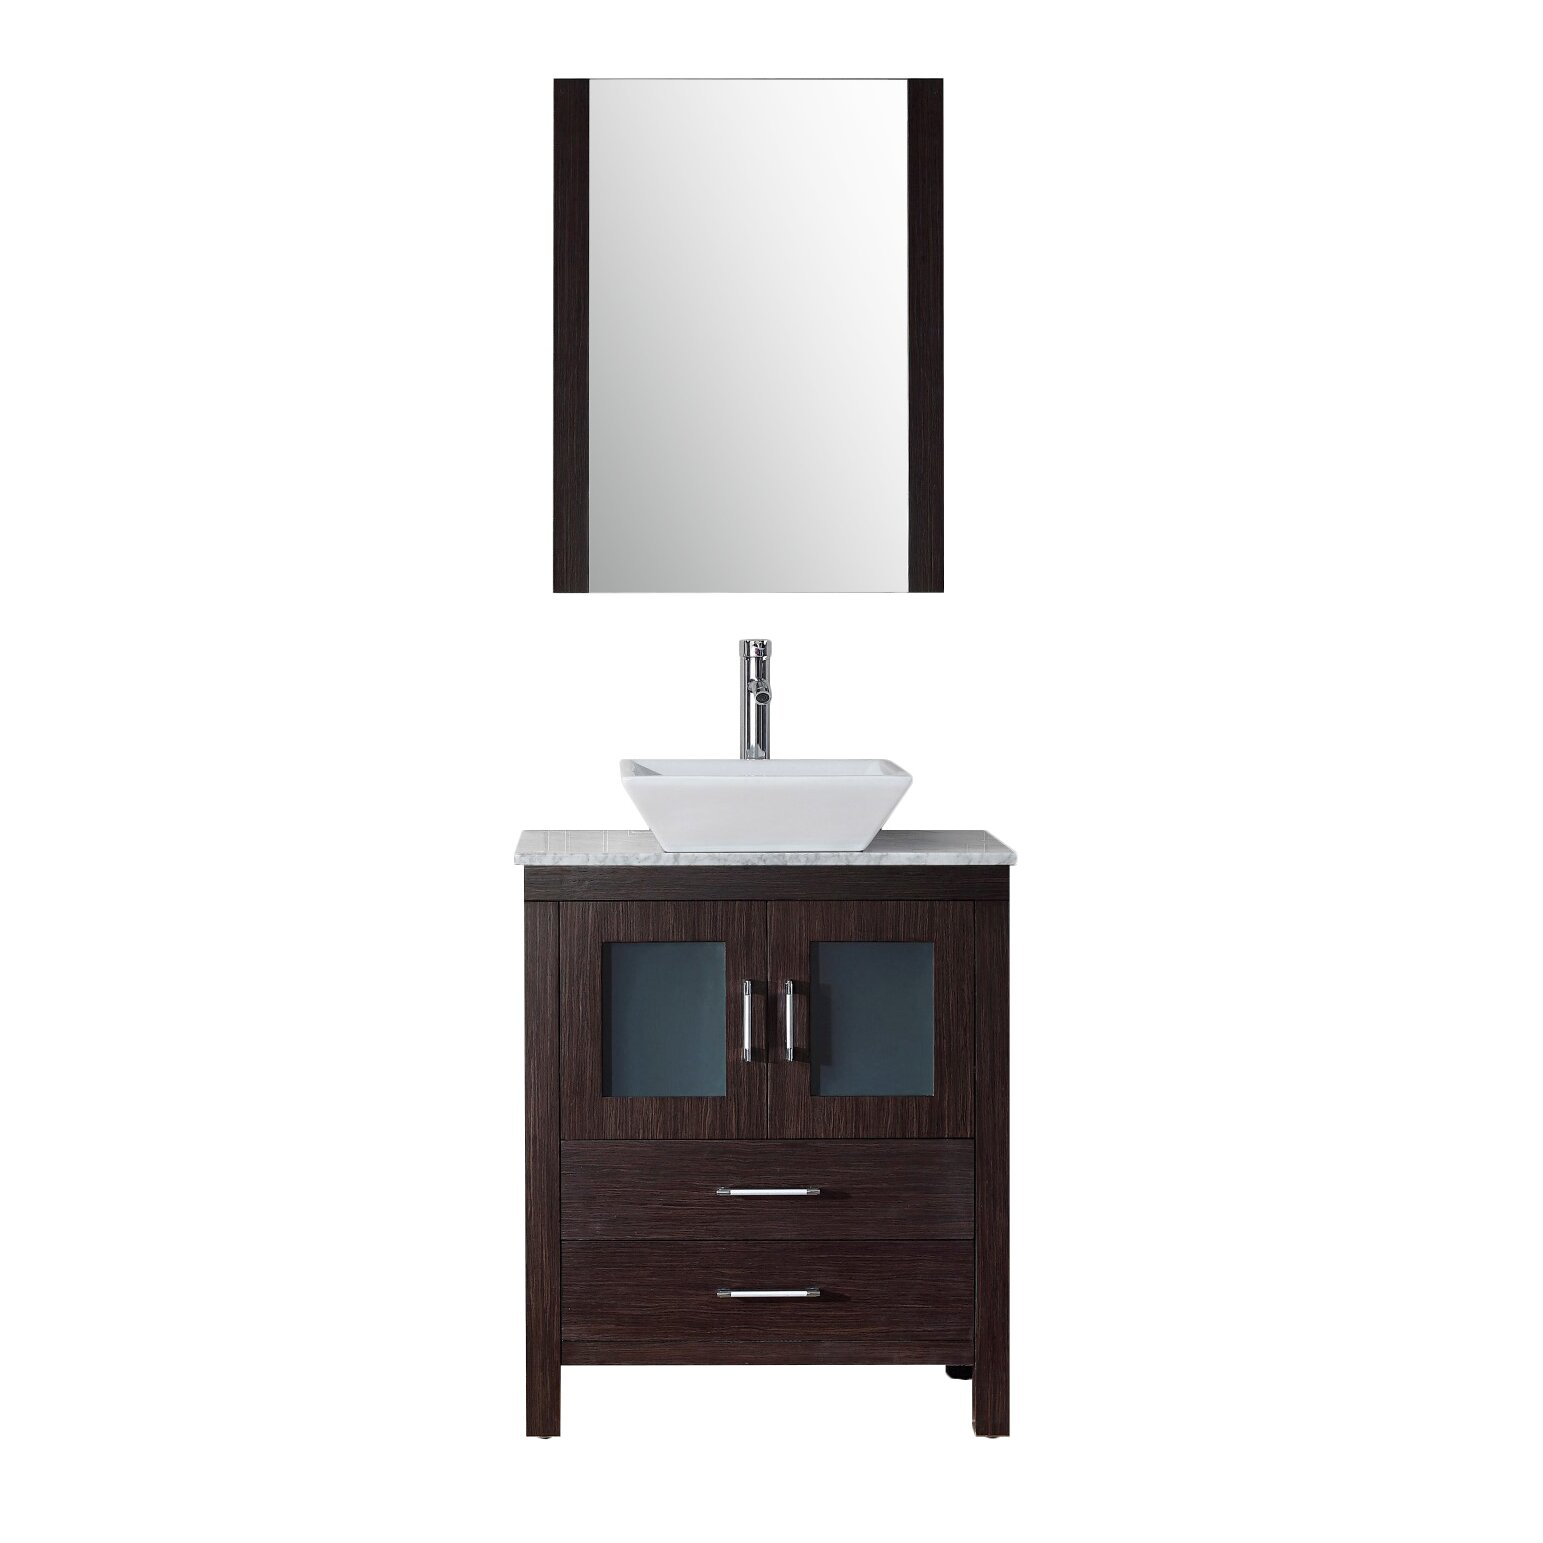 virtu 28 4 quot single bathroom vanity set with white